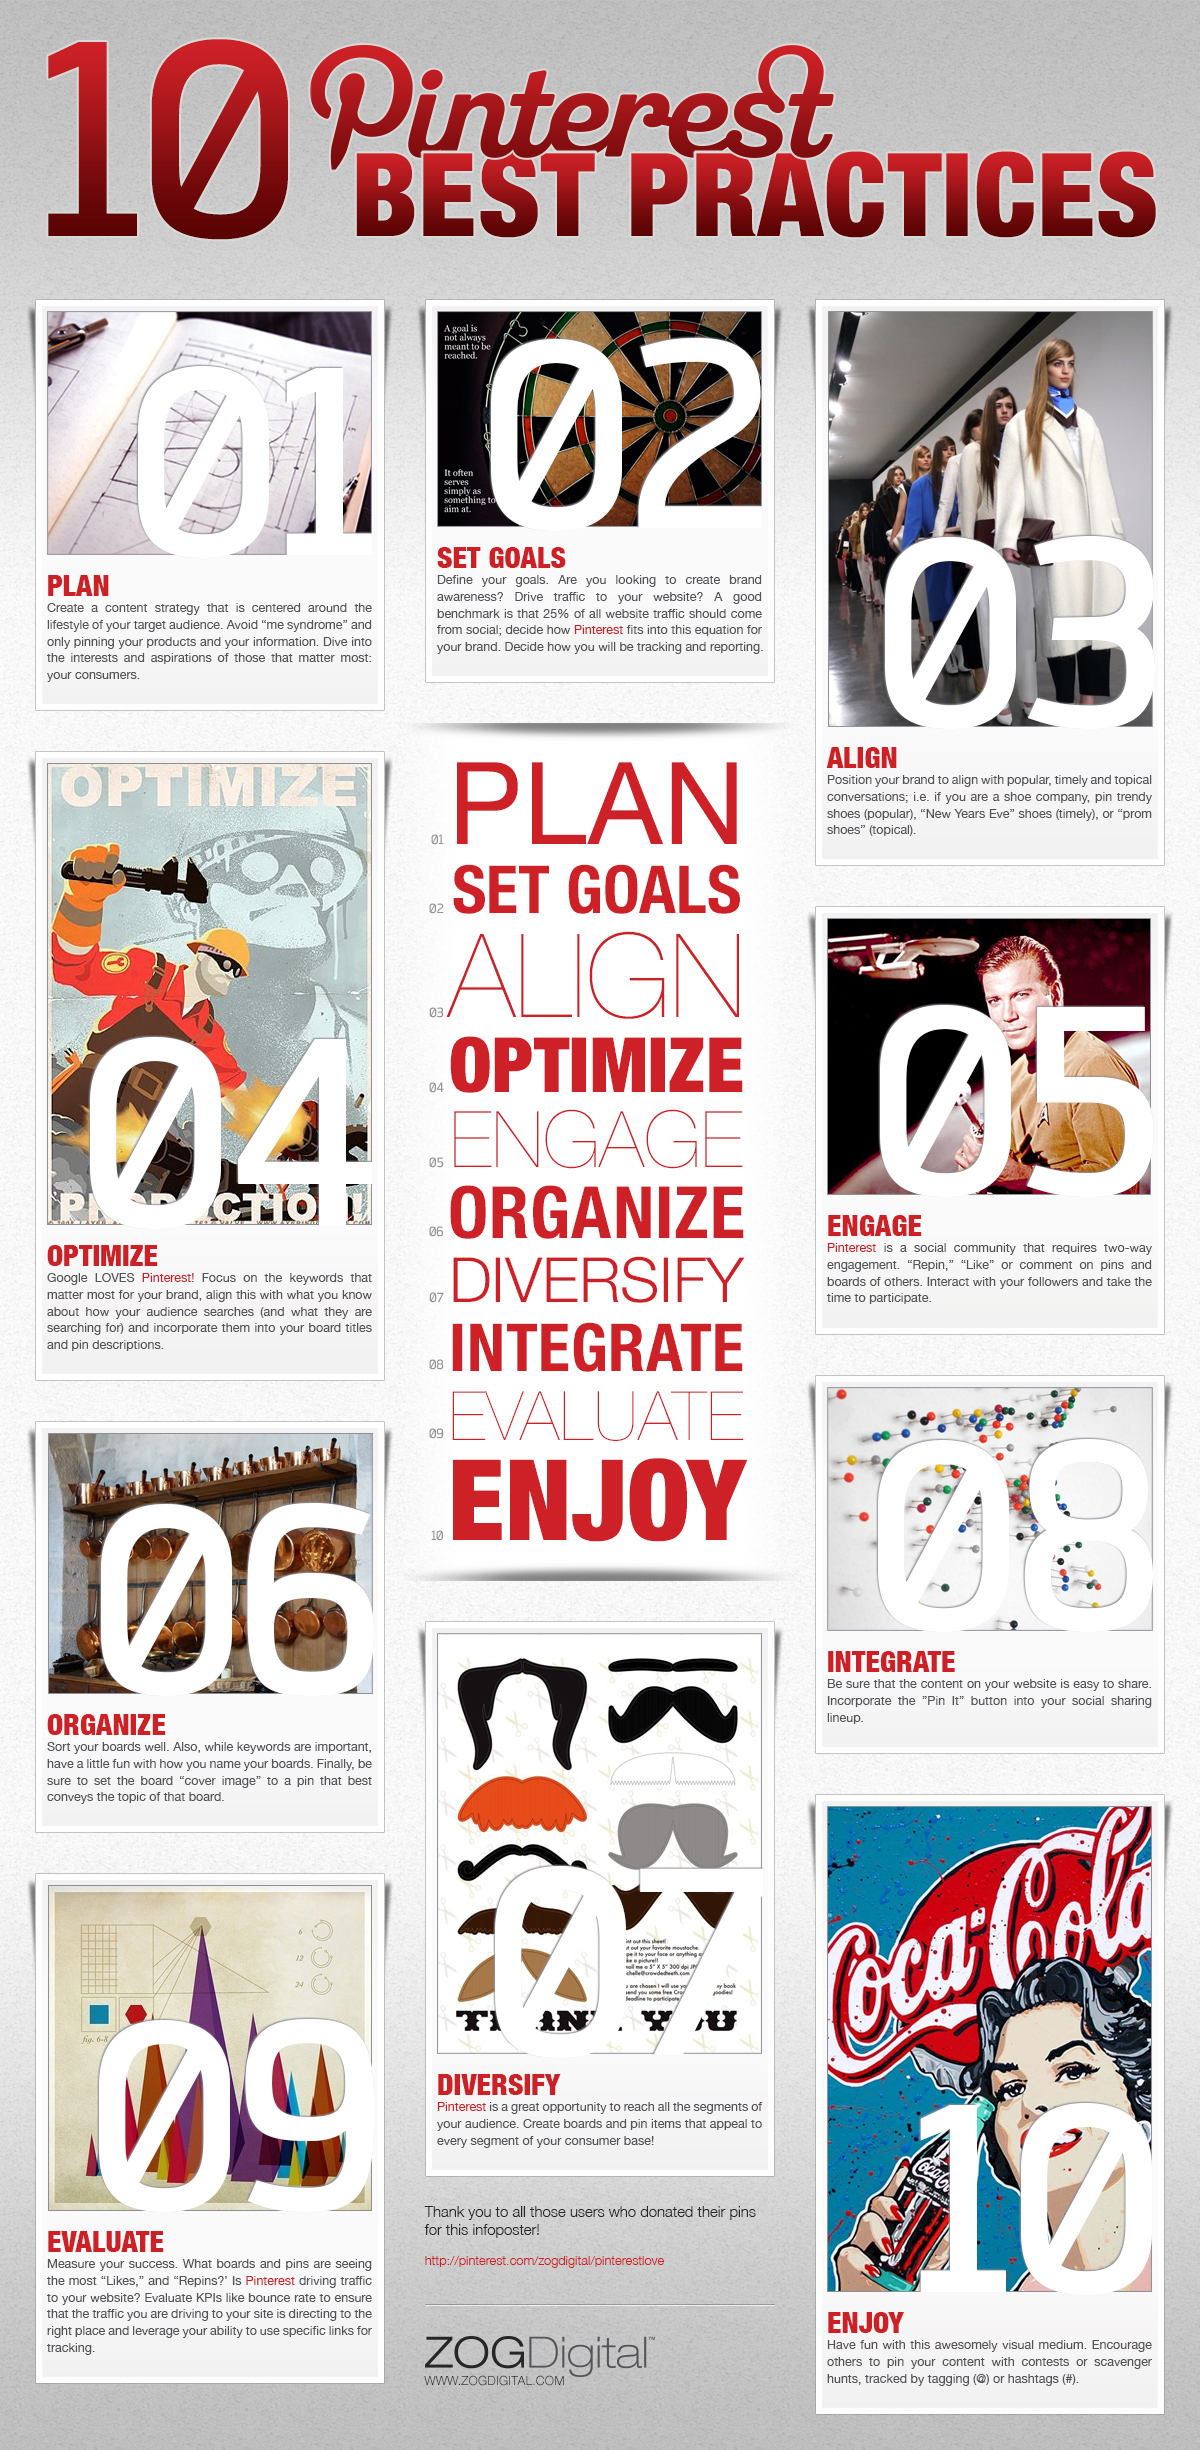 Pinterest Best Practices Visual Ly